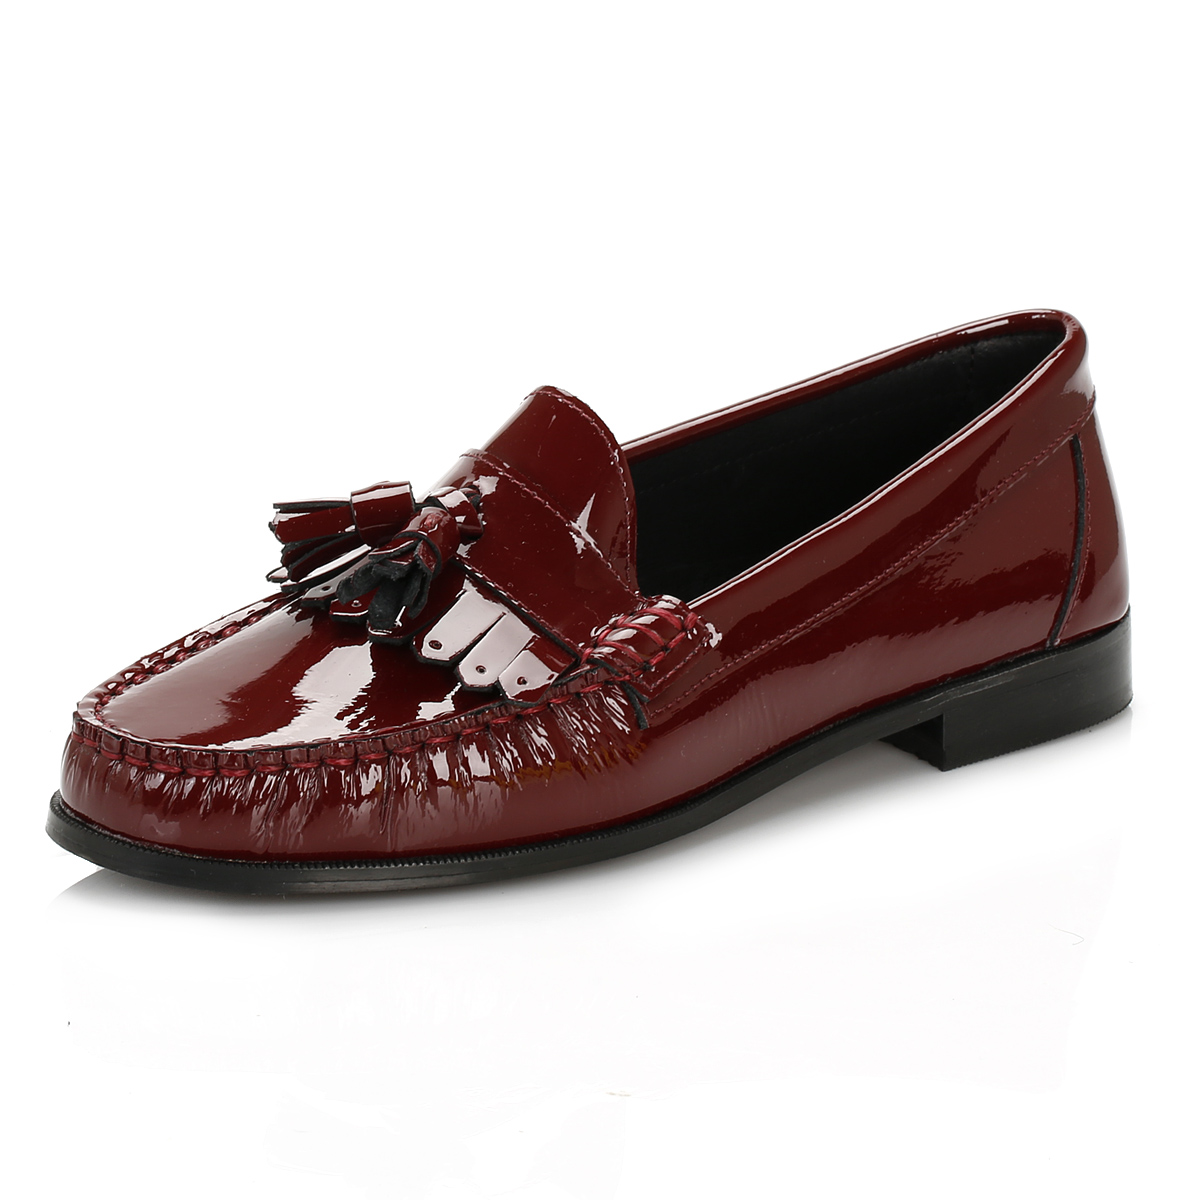 Black Leather Ladies Moccasin Shoes